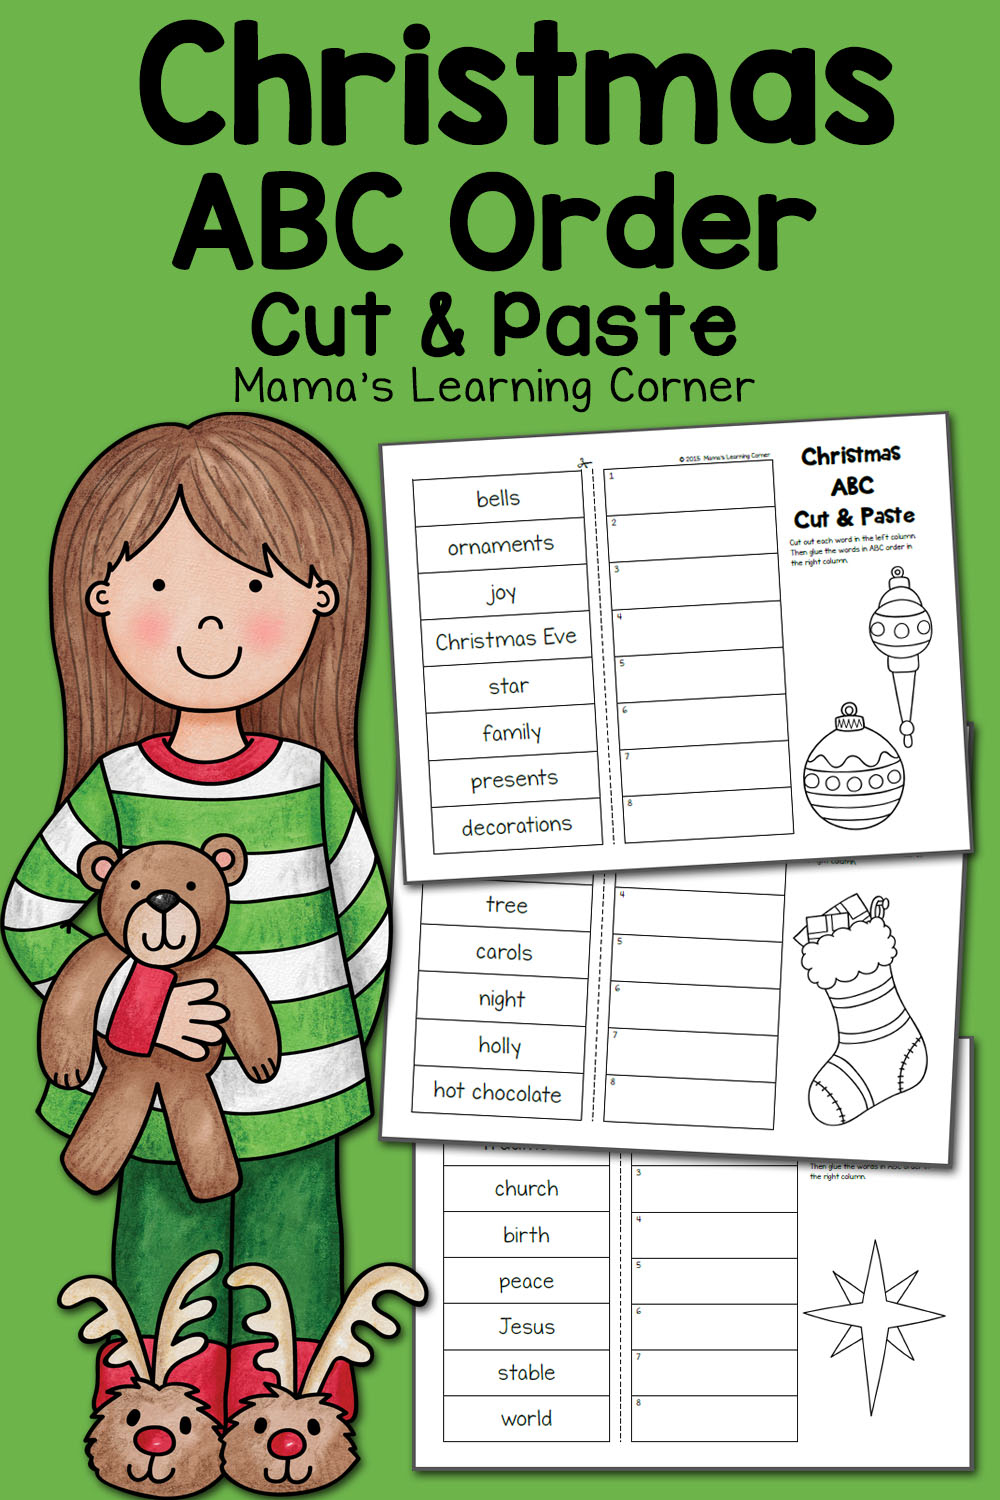 Christmas Abc Order Worksheets: Cut And Paste! - Mamas Learning Corner | Printable Abc Order Worksheets